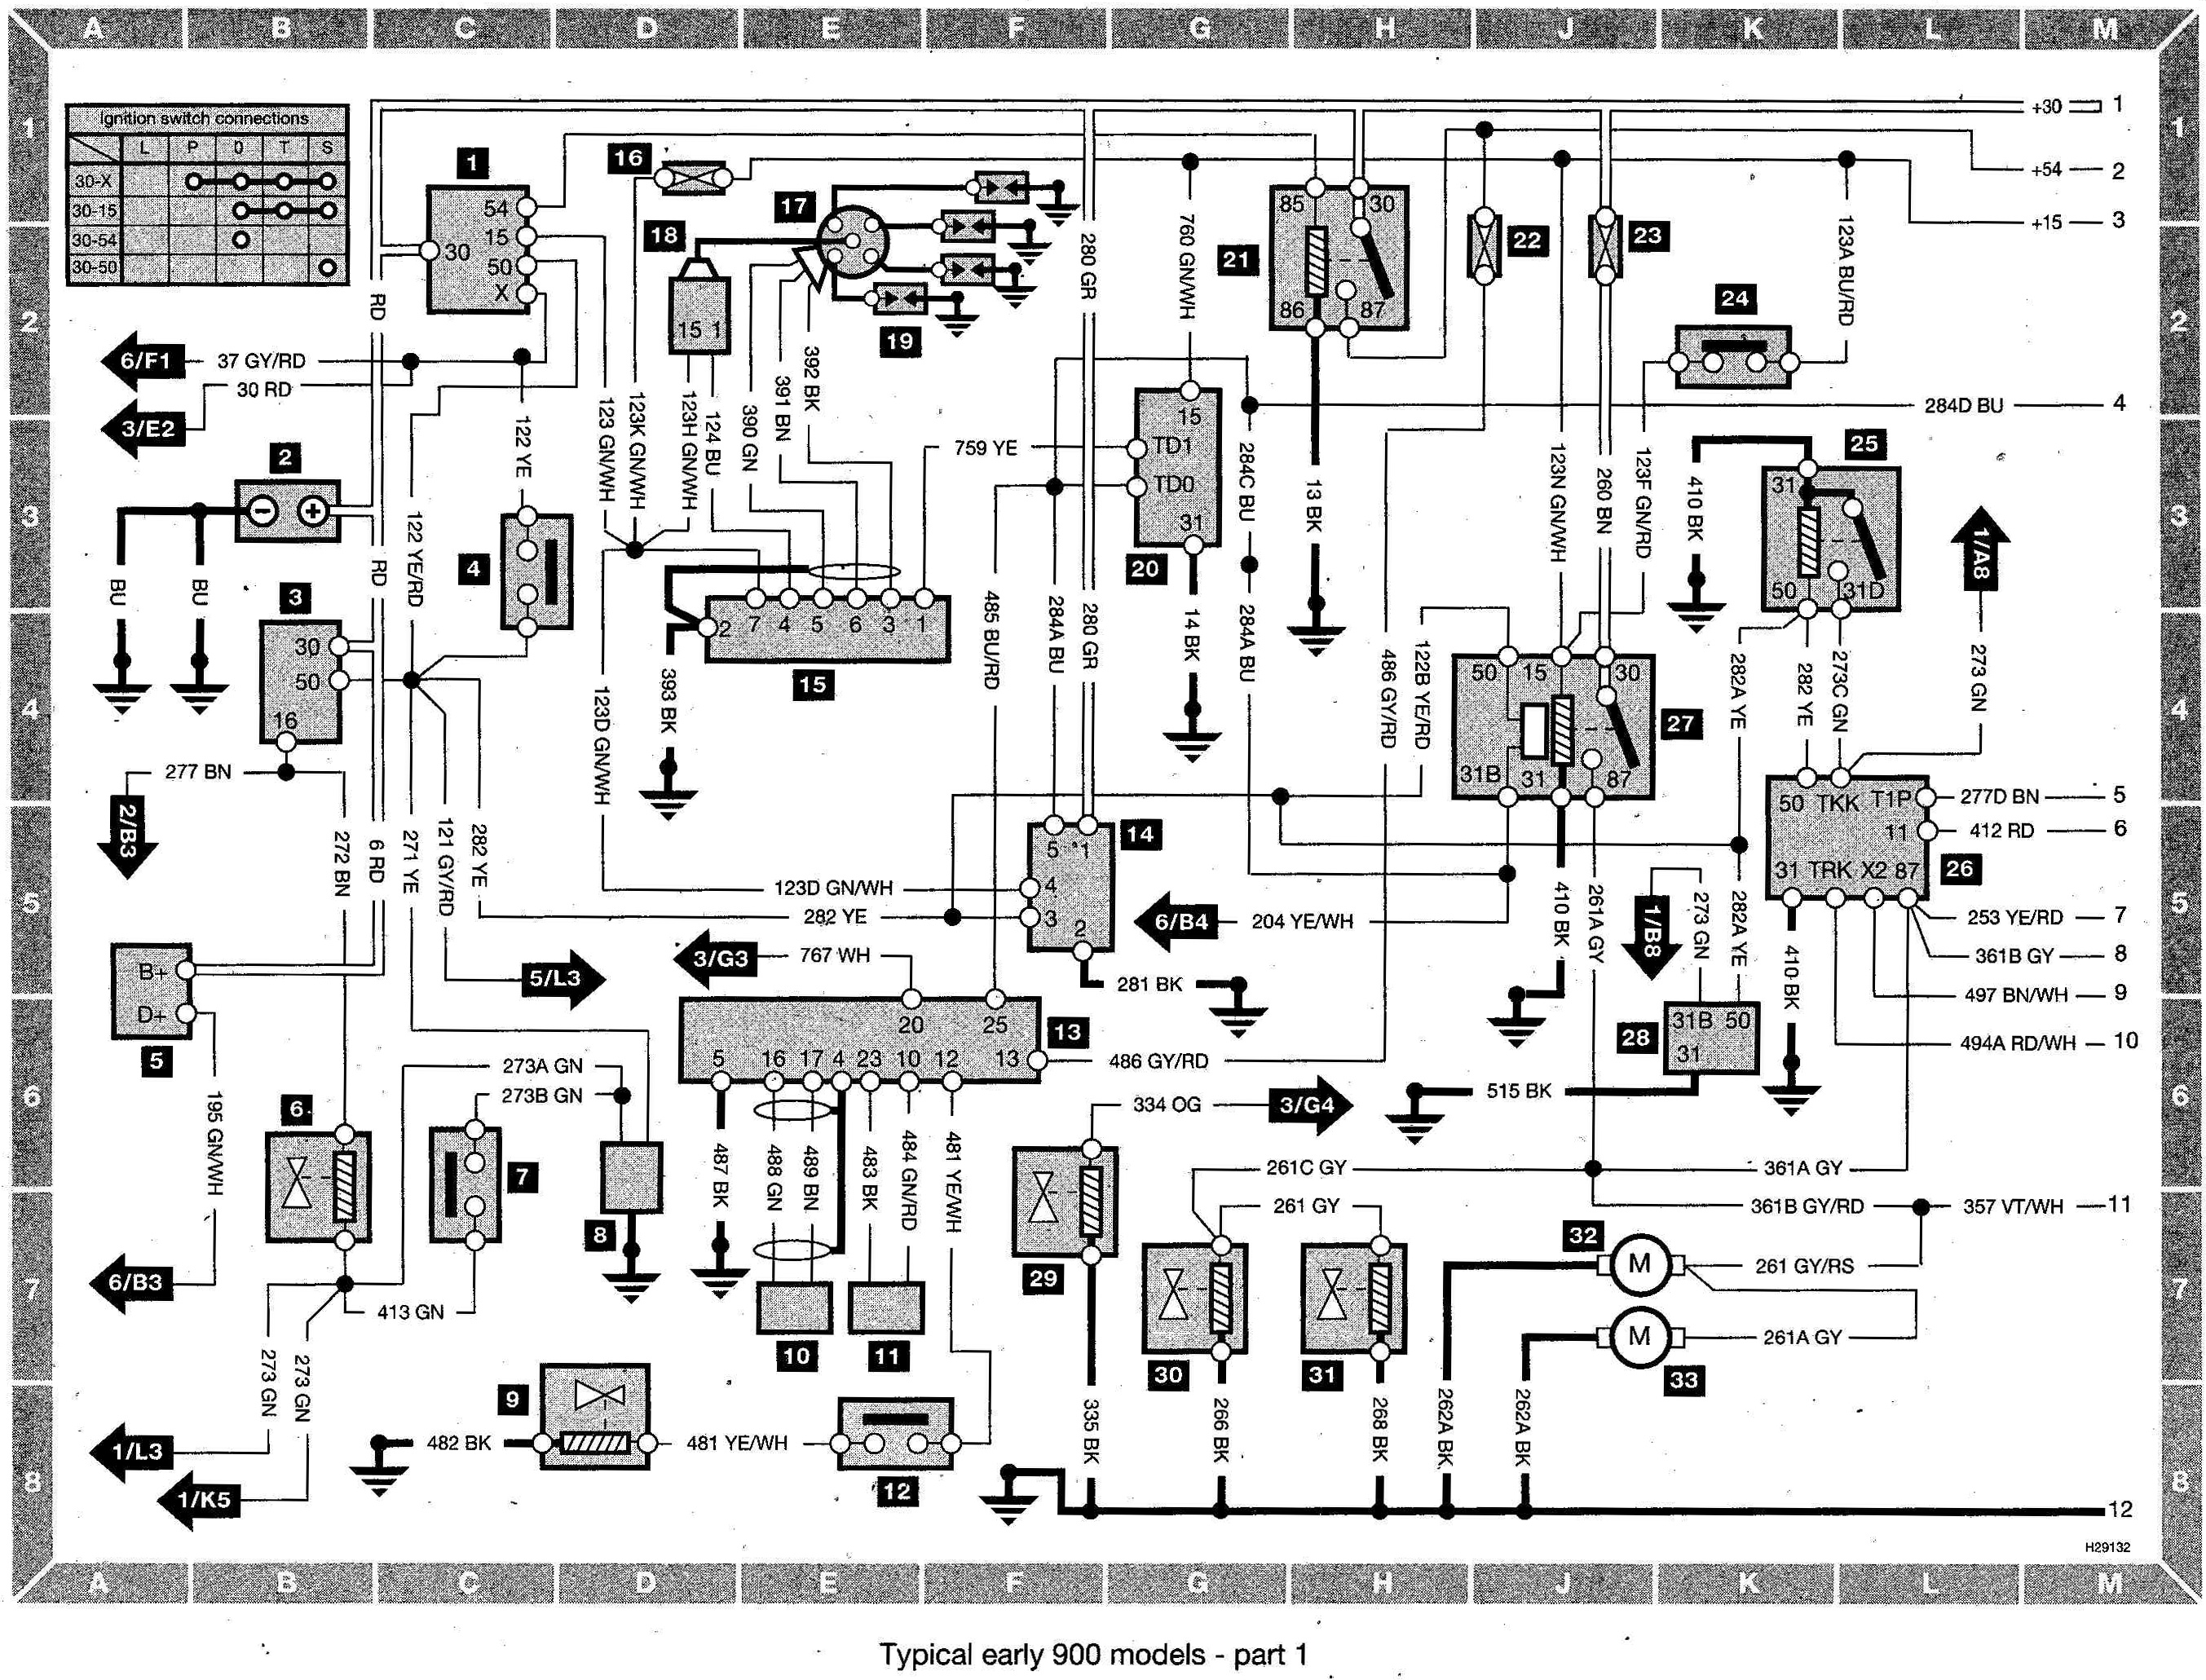 saab wiring information - fusebox and wiring diagram cable-drive -  cable-drive.parliamoneassieme.it  diagram database